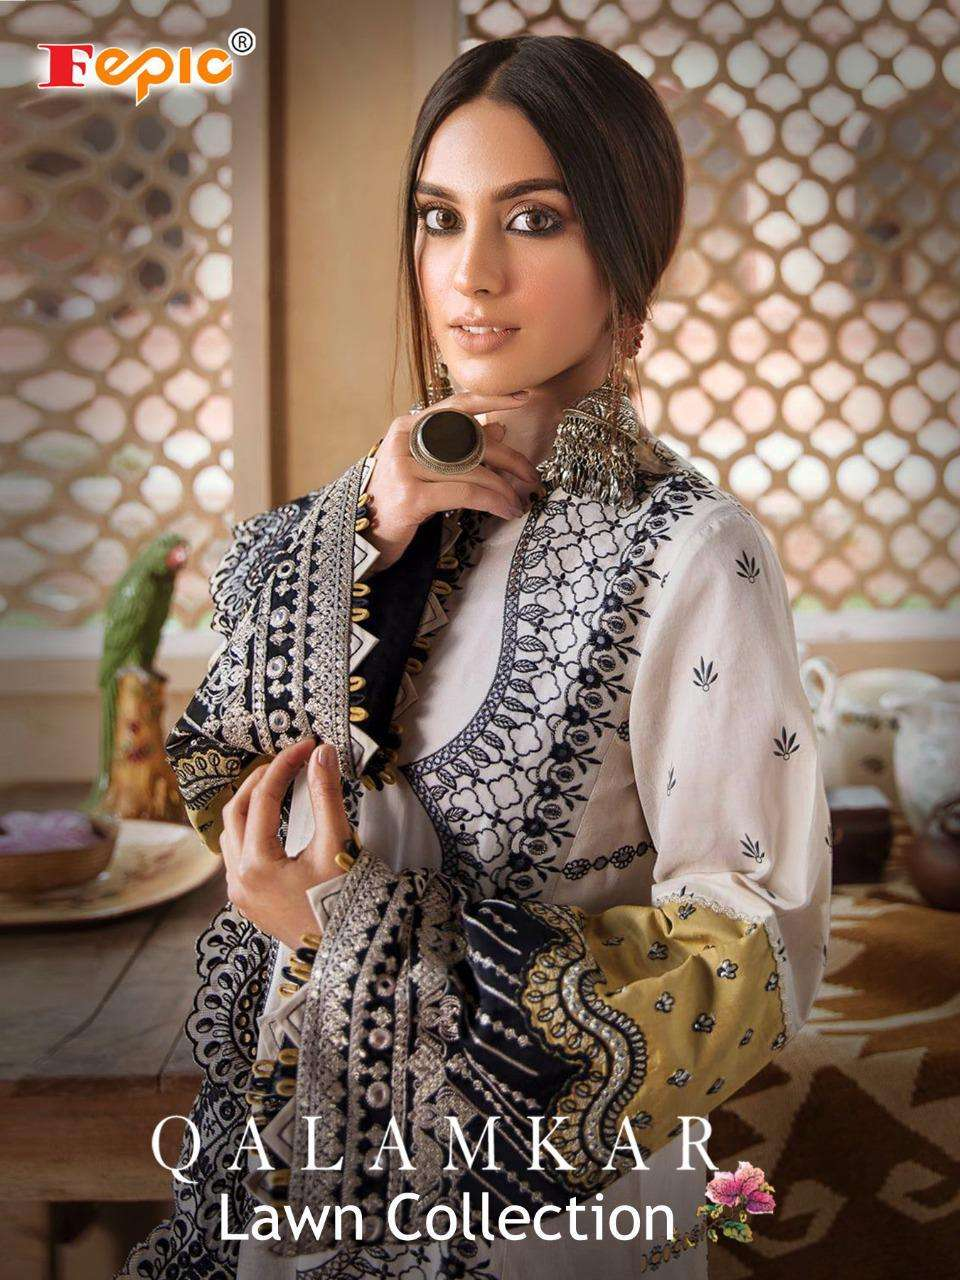 Fepic Qalamkar Lawn Collection Cambric Cotton Salwar Kameez In Wholesale